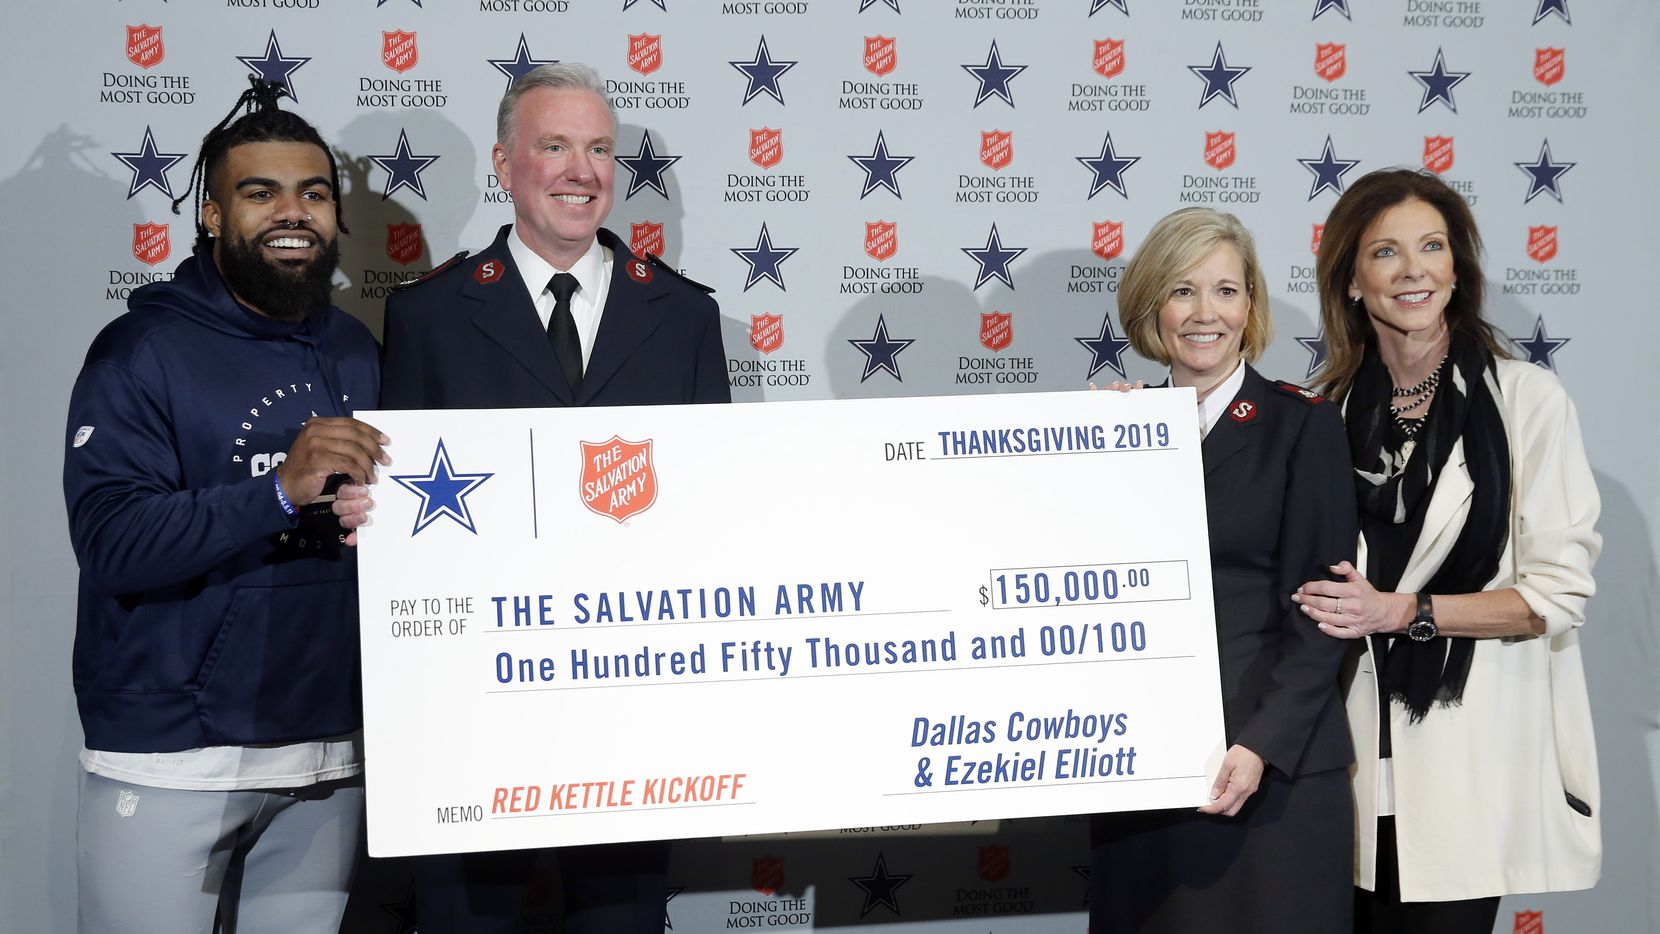 Ahead of the Salvation Army Red Kettle Campaign kickoff, Dallas Cowboys running back Ezekiel Elliott donated proceeds of the 'Zeke Who?' t-shirt to the Salvation Army during a press conference at The Star in Frisco, Texas, Tuesday, November 26, 2019. Joining him (left) with a $150,000 check is Salvation Army's North Texas Area Commanders Major Jon Rich and his wife Barbara Rich, and Cowboys Executive Vice President and Chief Brand Officer Charlotte Jones. (Tom Fox/The Dallas Morning News)